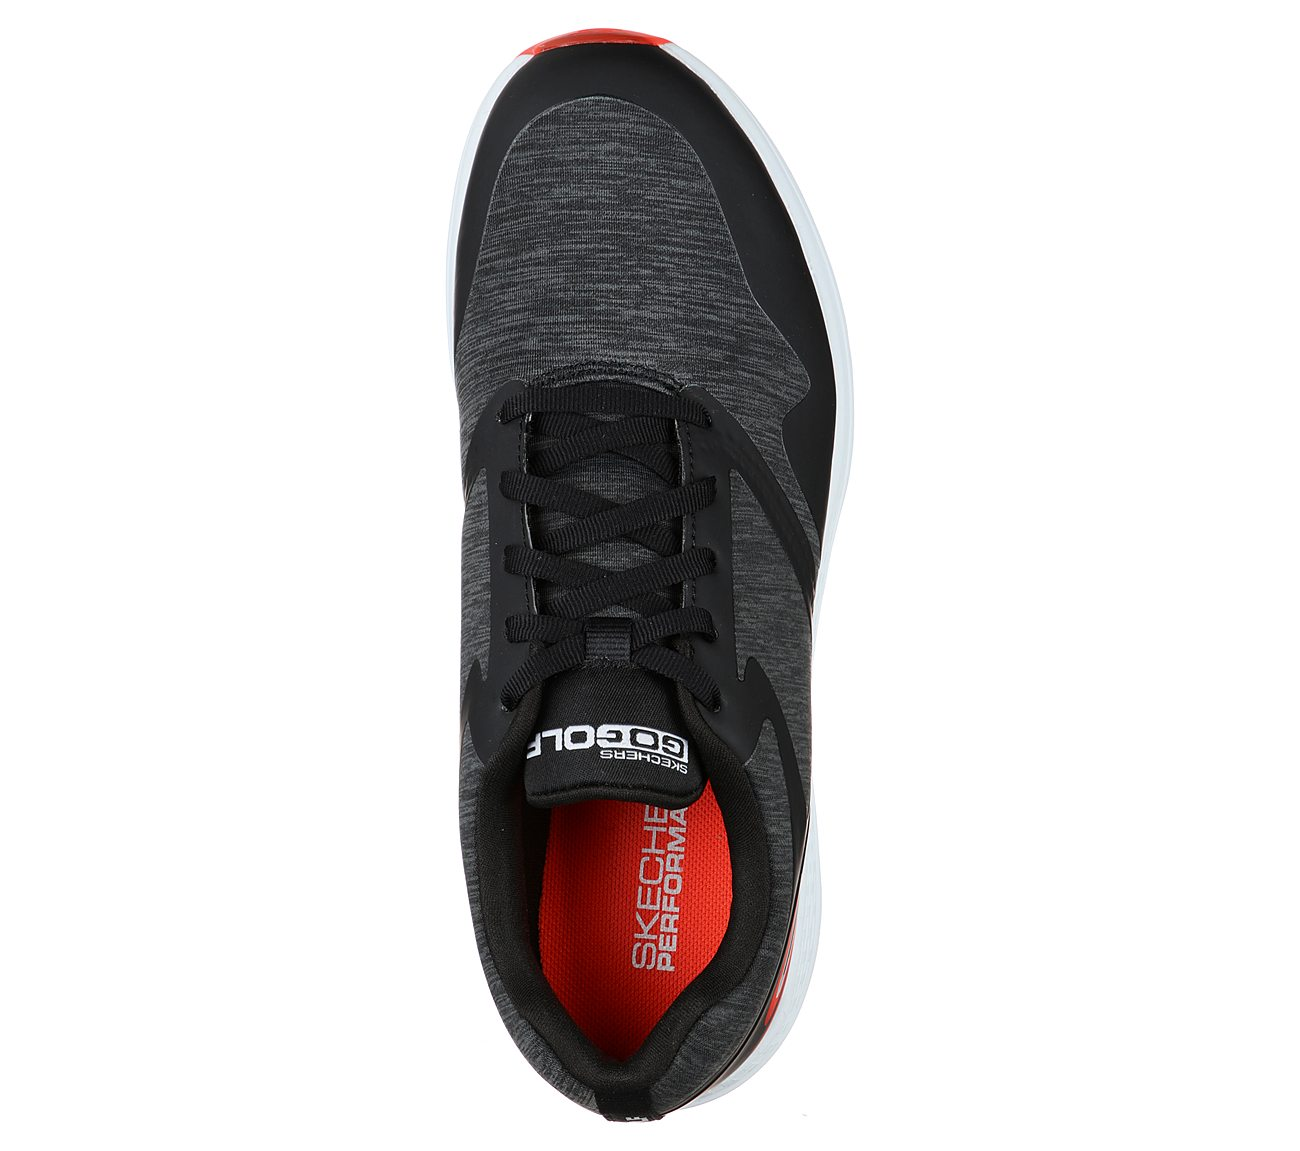 8588a5143c551 Skechers GO GOLF Max - Cut. Click/tap to zoom · Alternate View 1 ·  Alternate View 2 · Alternate View 3